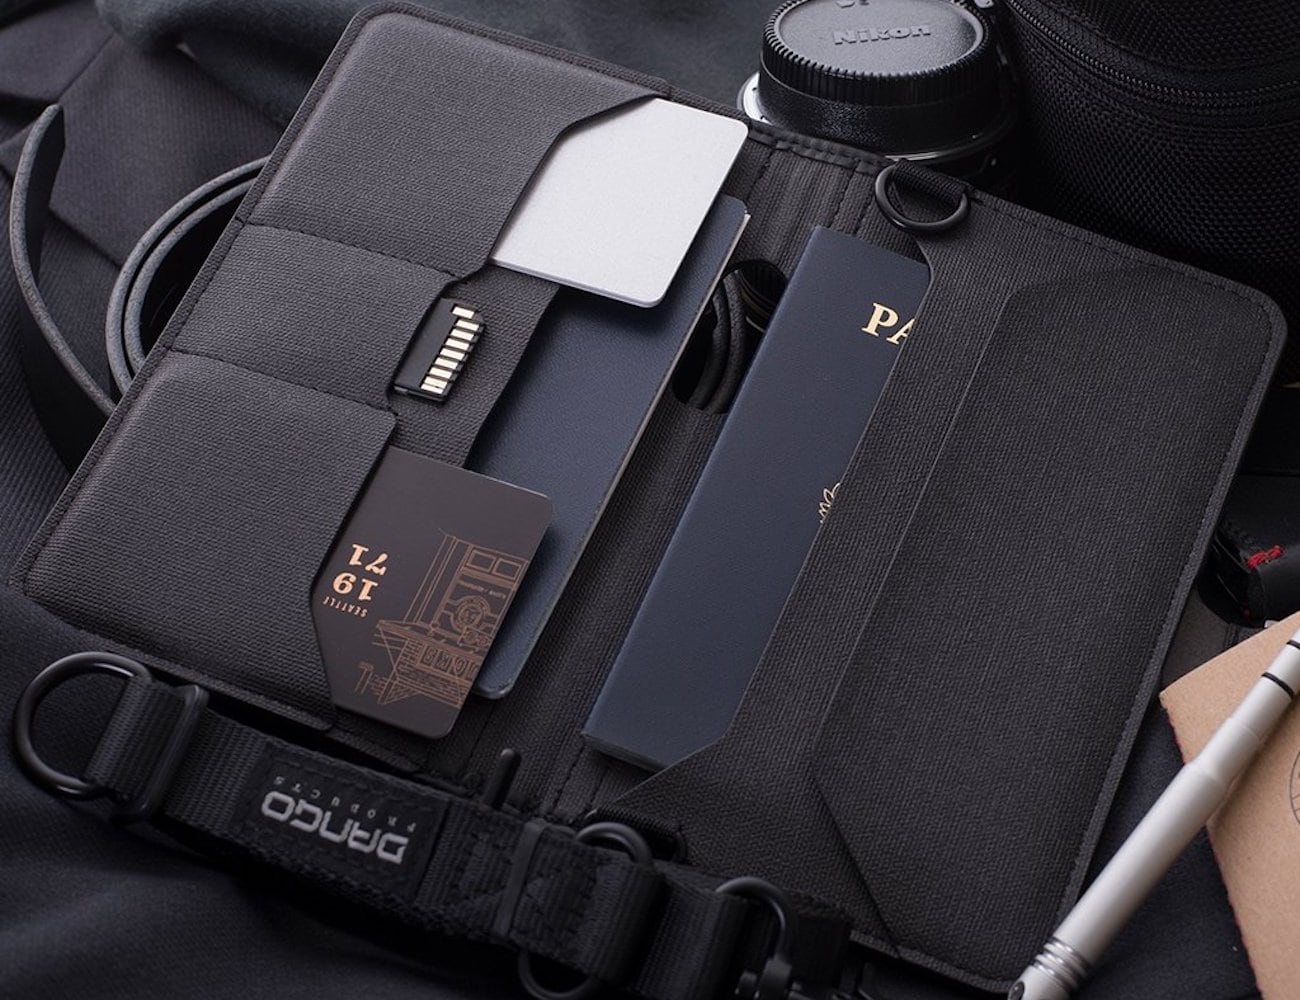 Dango P02 Pioneer Large Travel Wallet is here to carry all of your important travel documents